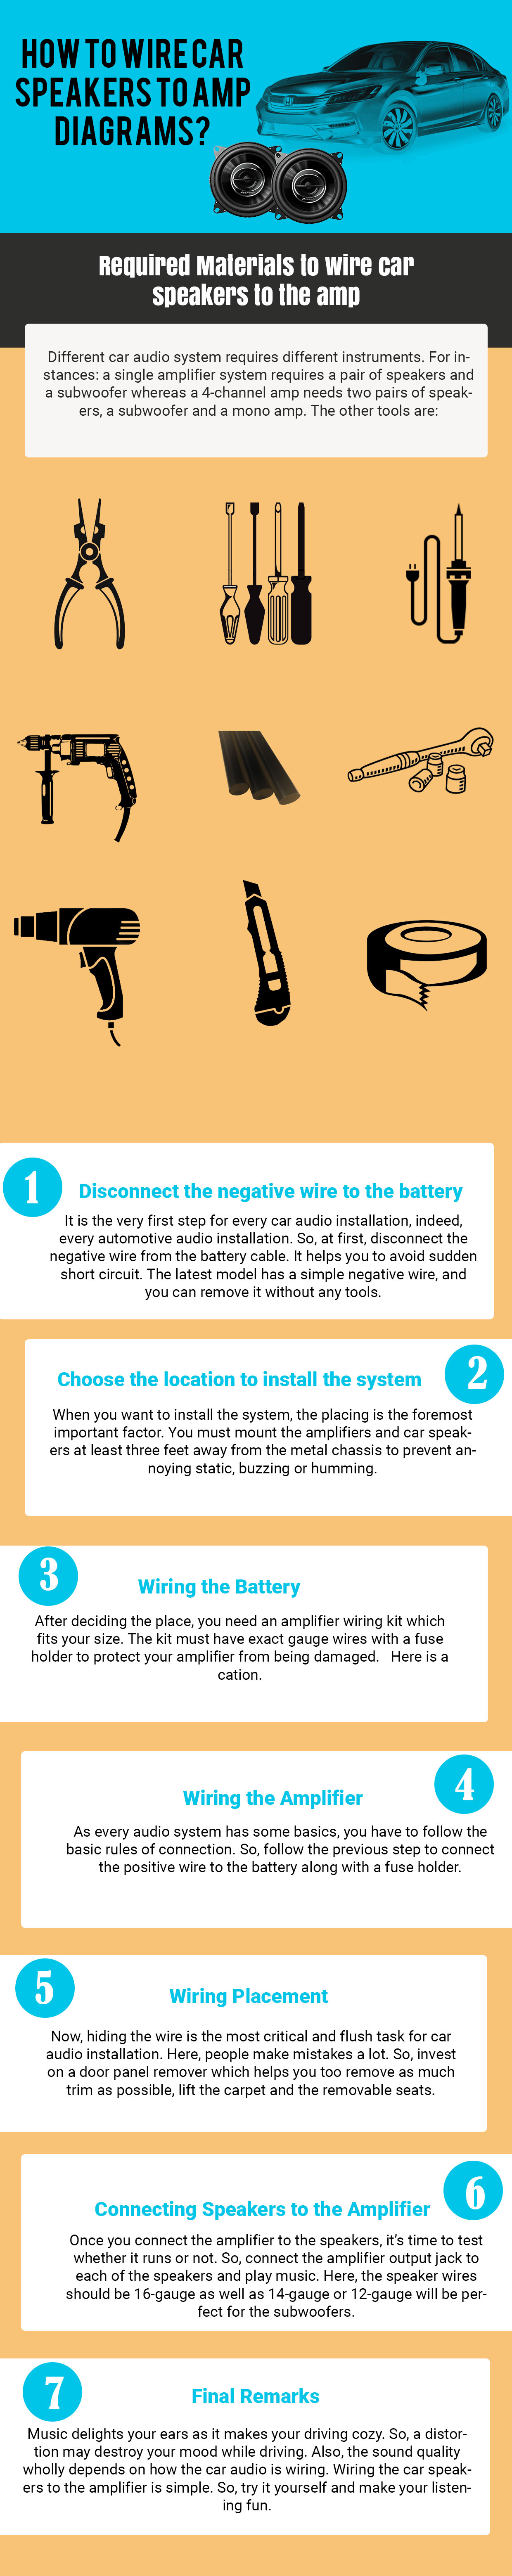 How To Wire Car Speakers Amp Diagrams Myaudiolabs Here Is The Wiring Diagram Each Labeled Where Goes Disconnect Negative Battery